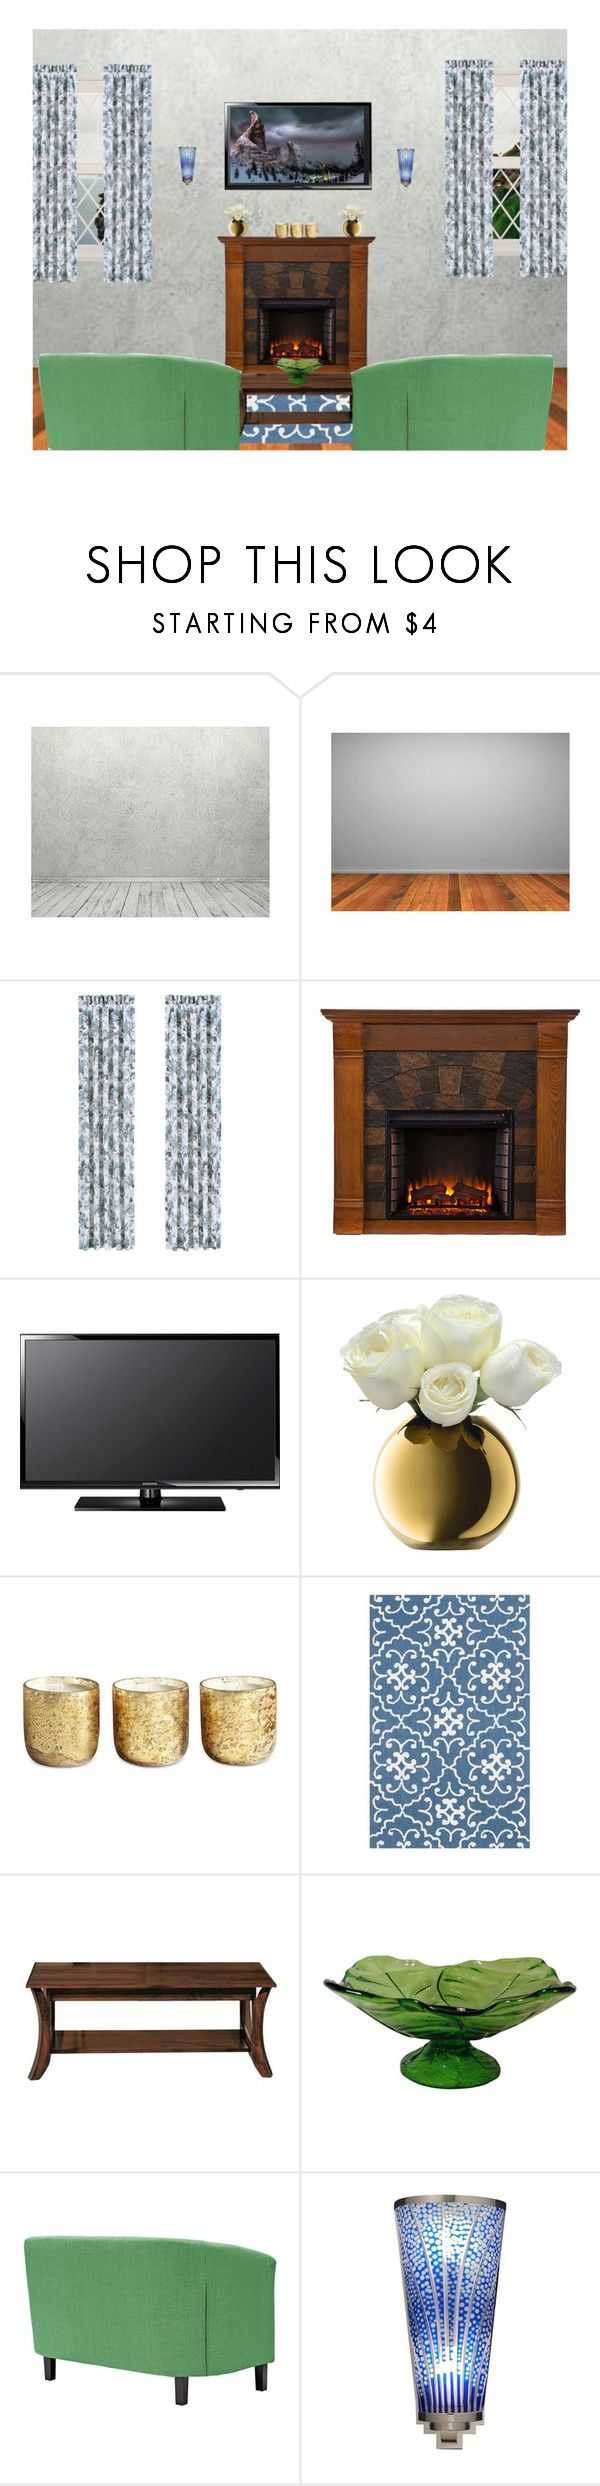 """""""Tv Room"""" by selene-cinzia ❤ liked on Polyvore featuring interior, interiors, interior design, home, home decor, interior decorating, J. Queen New York, Southern Enterprises, Samsung and LSA International"""